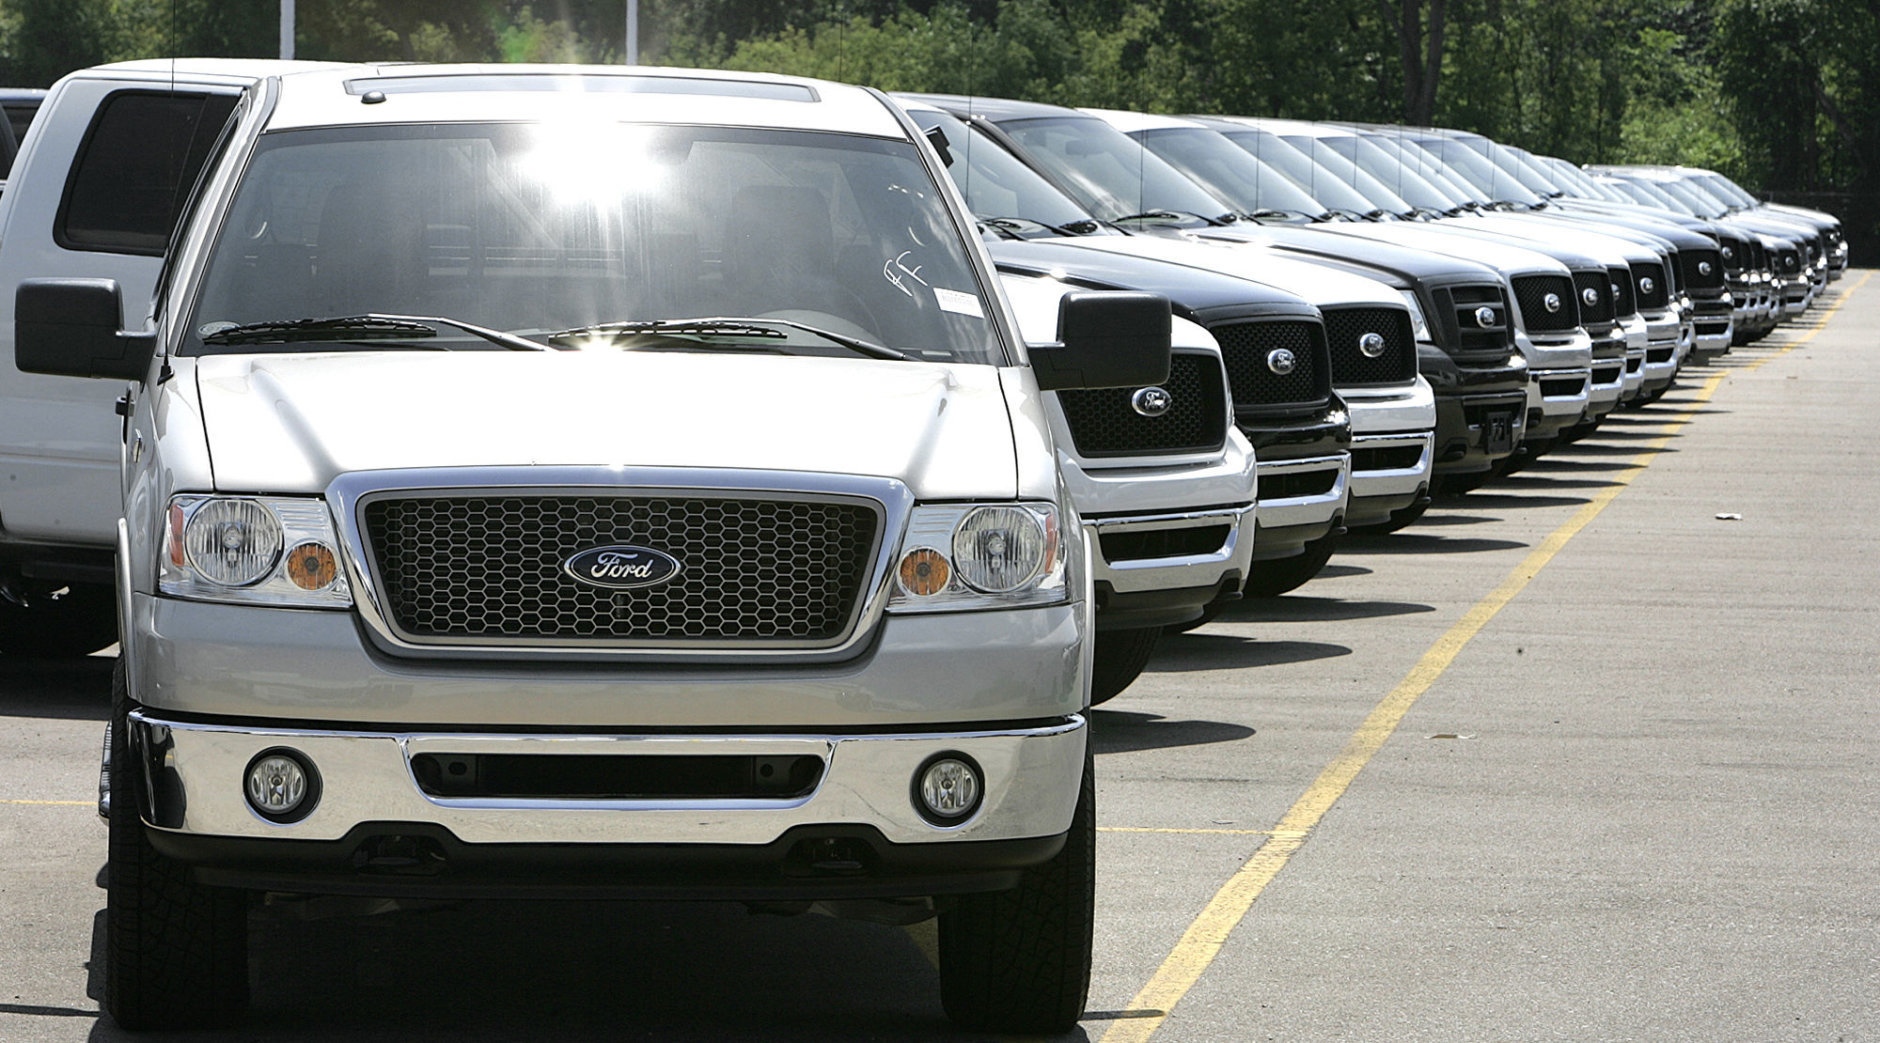 The Ford Pickup truck saw 35,105 thefts overall last year. (AP Photo/Paul Sancya, file)